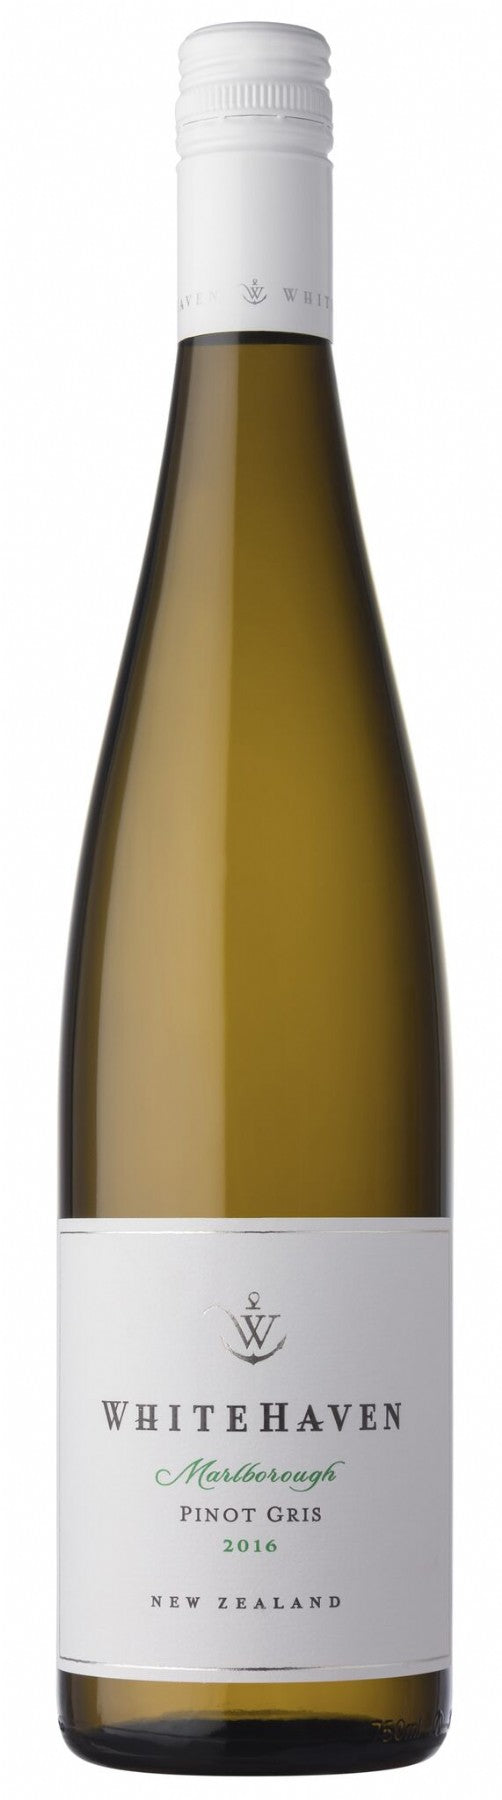 WHITEHAVEN PINOT GRIS 17